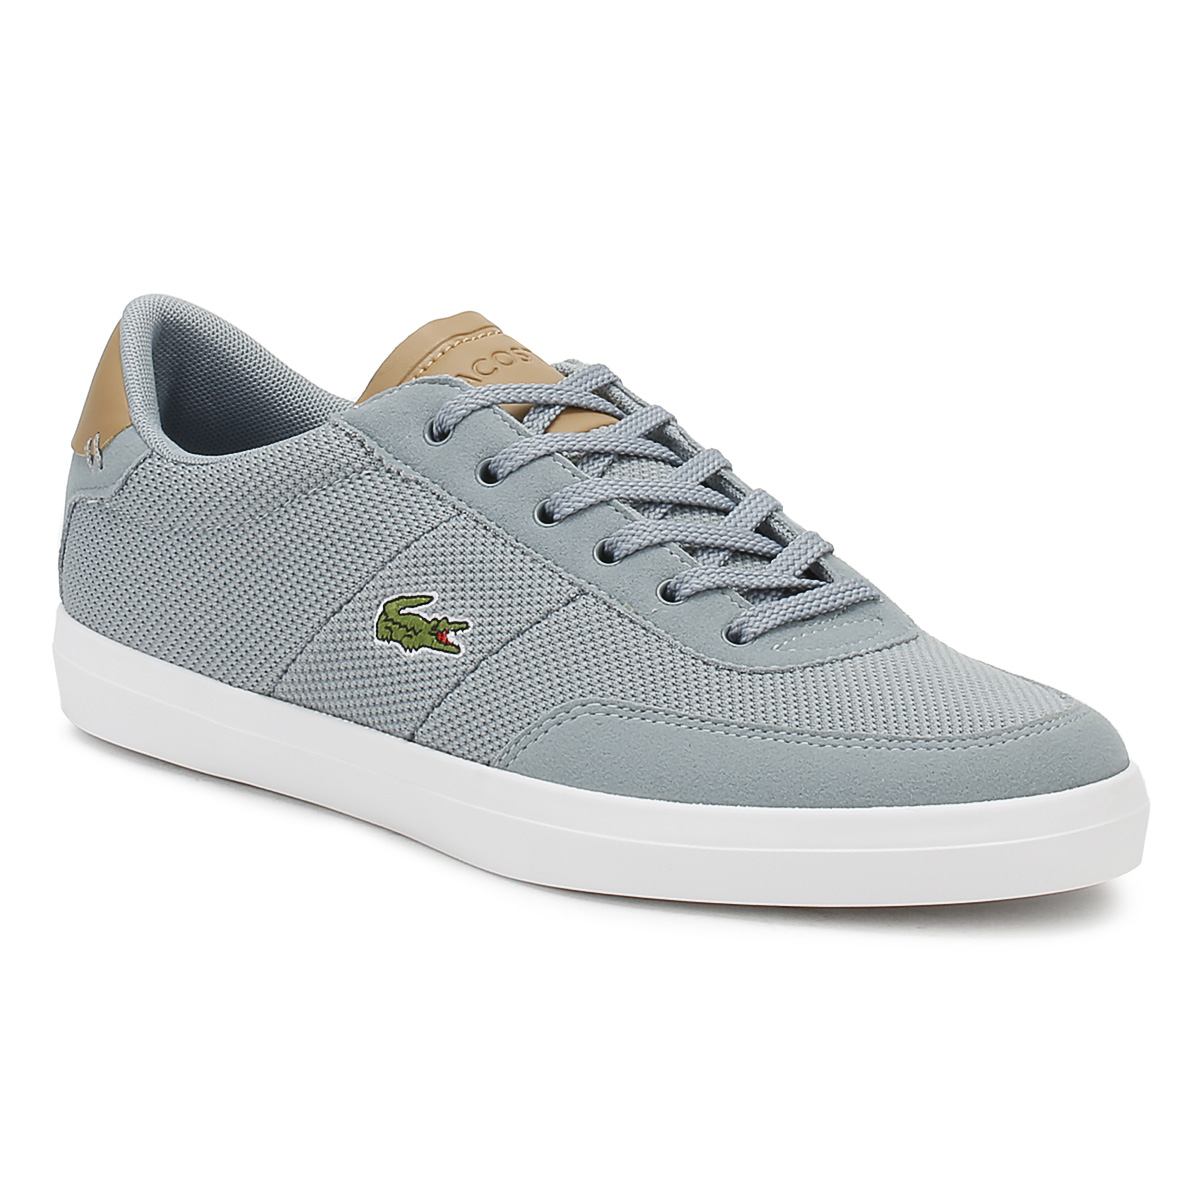 Lacoste Hombre Trainers Gris & Light Tan Court Master 118 118 118 1 Lace Up Casual Zapatos 6bb960